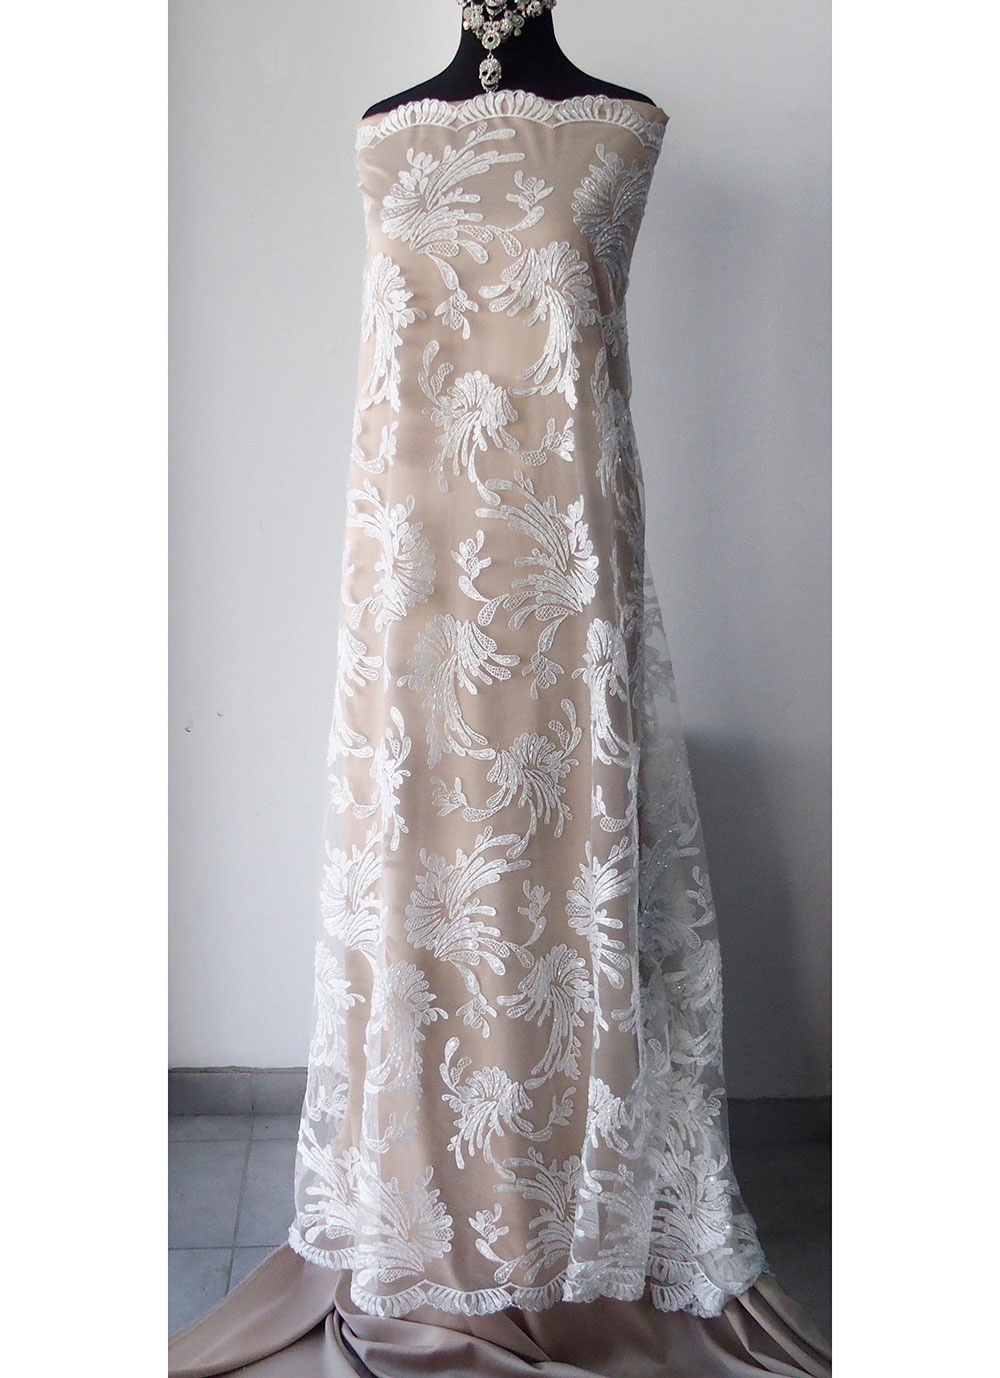 White off white bridal beaded lace fabric wedding dress for Materials for wedding dresses